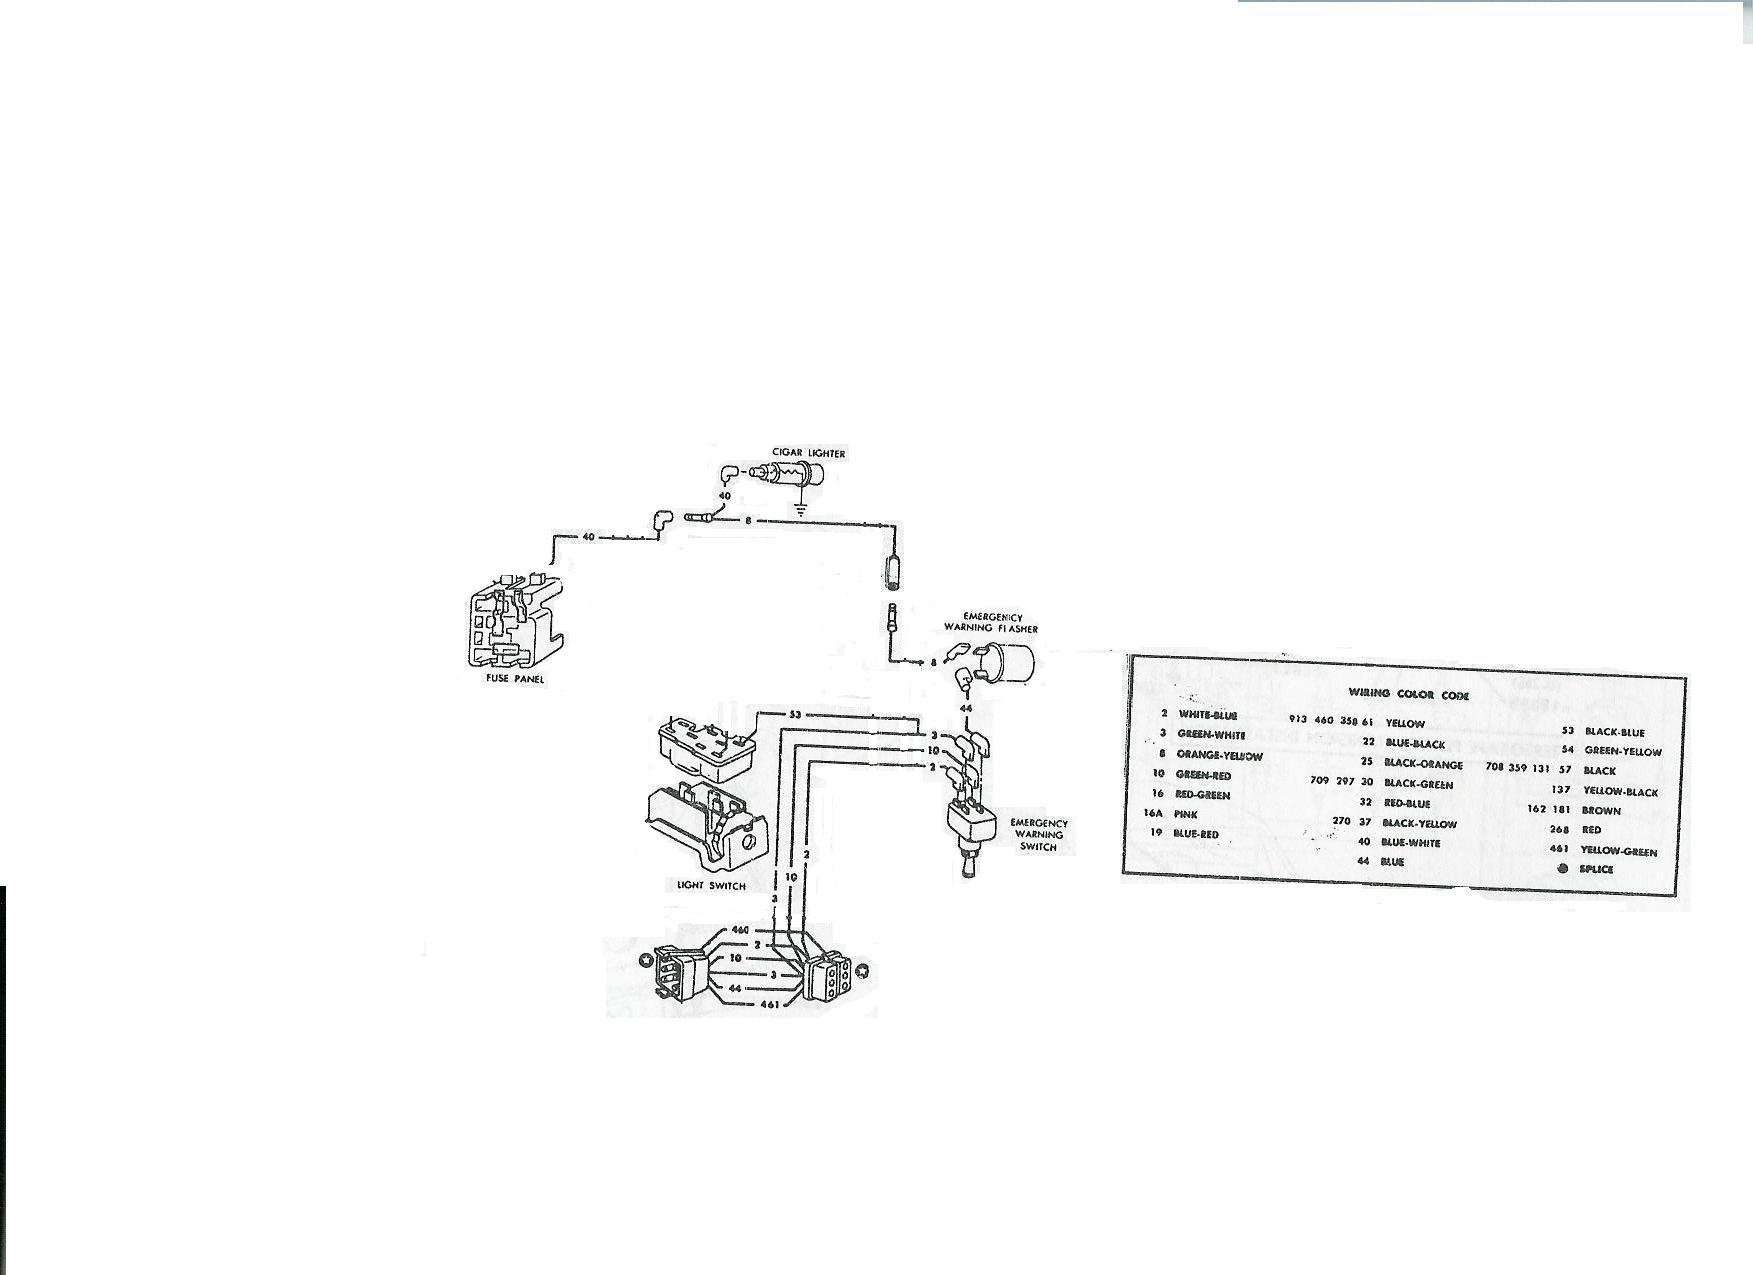 66 ford mustang wiring diagram alpine type x sub rally pac 32